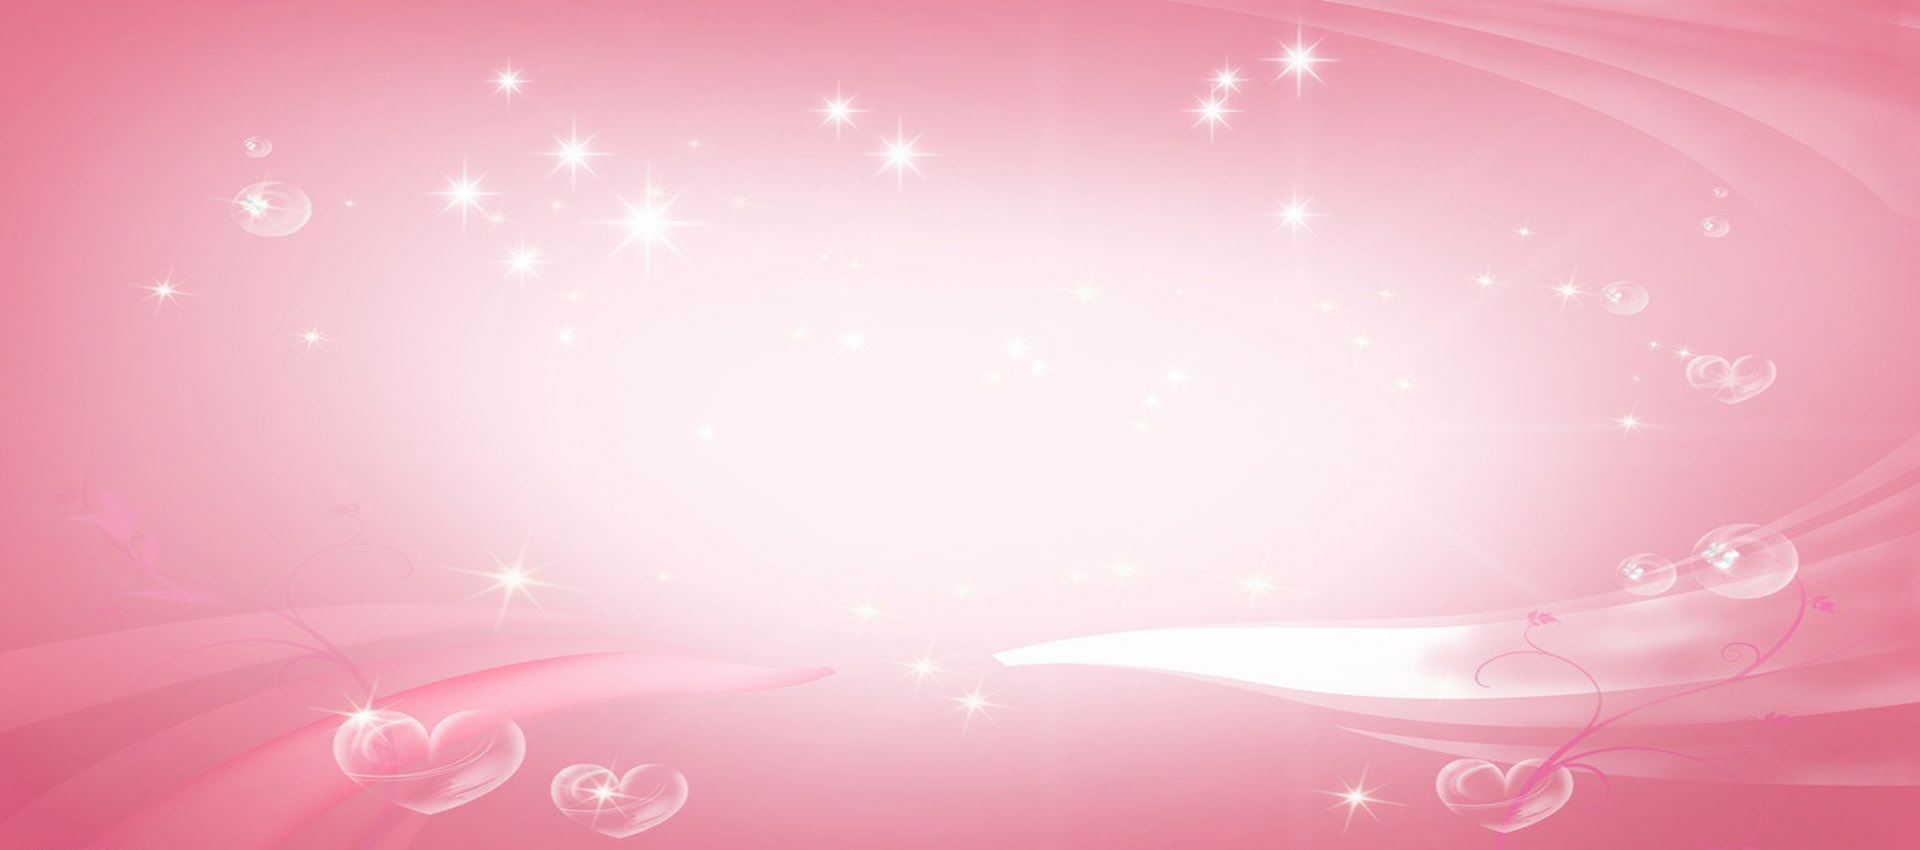 pink bubbles background stars  pink  star  bubble